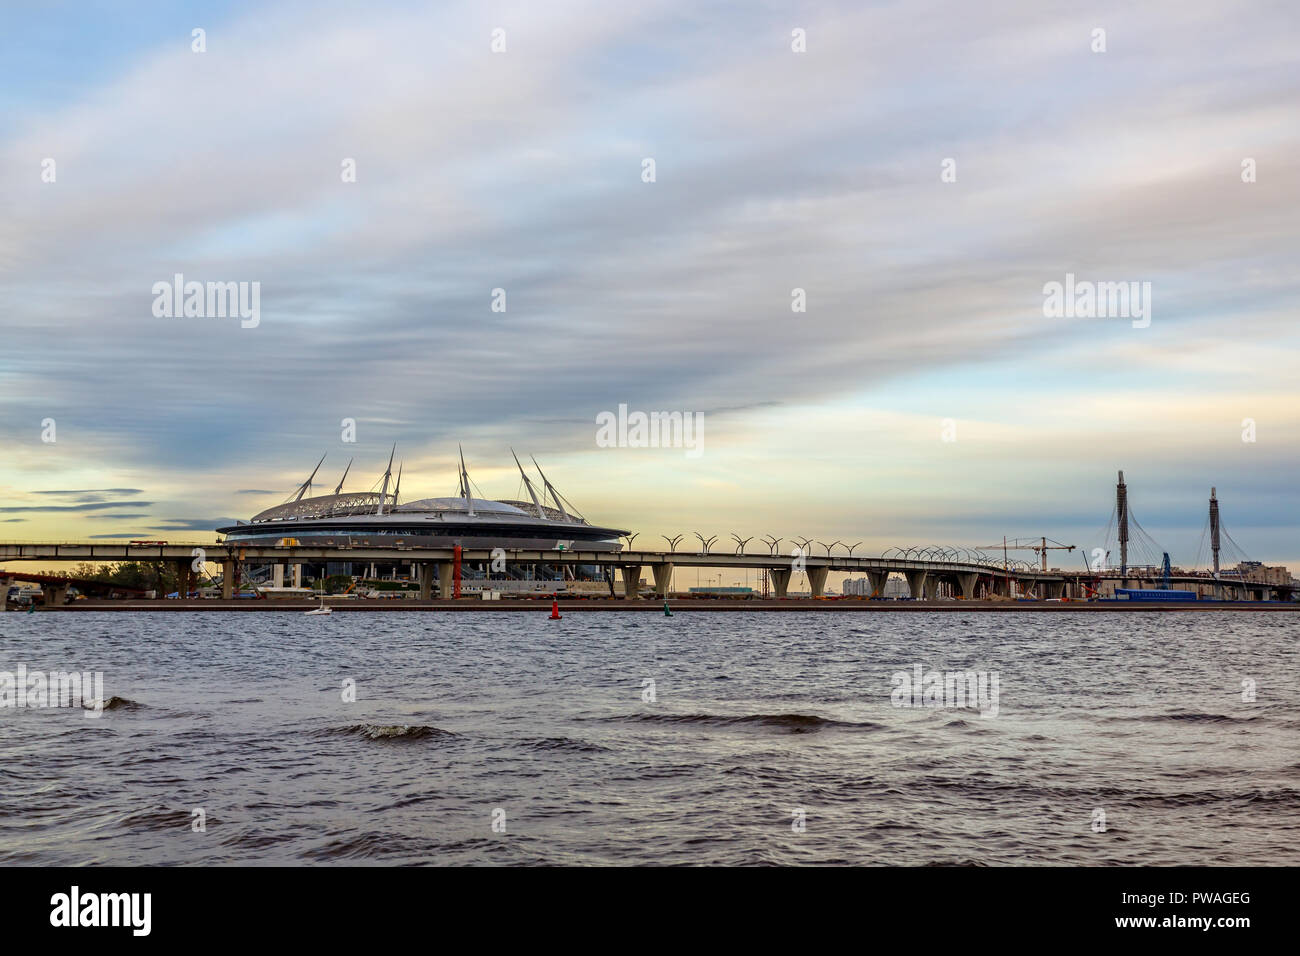 RUSSIA, SAINT PETERSBURG - August 28, 2016: Building stadium of local football team Zenit is called Zenith Arena, stadium currently under construction - Stock Image